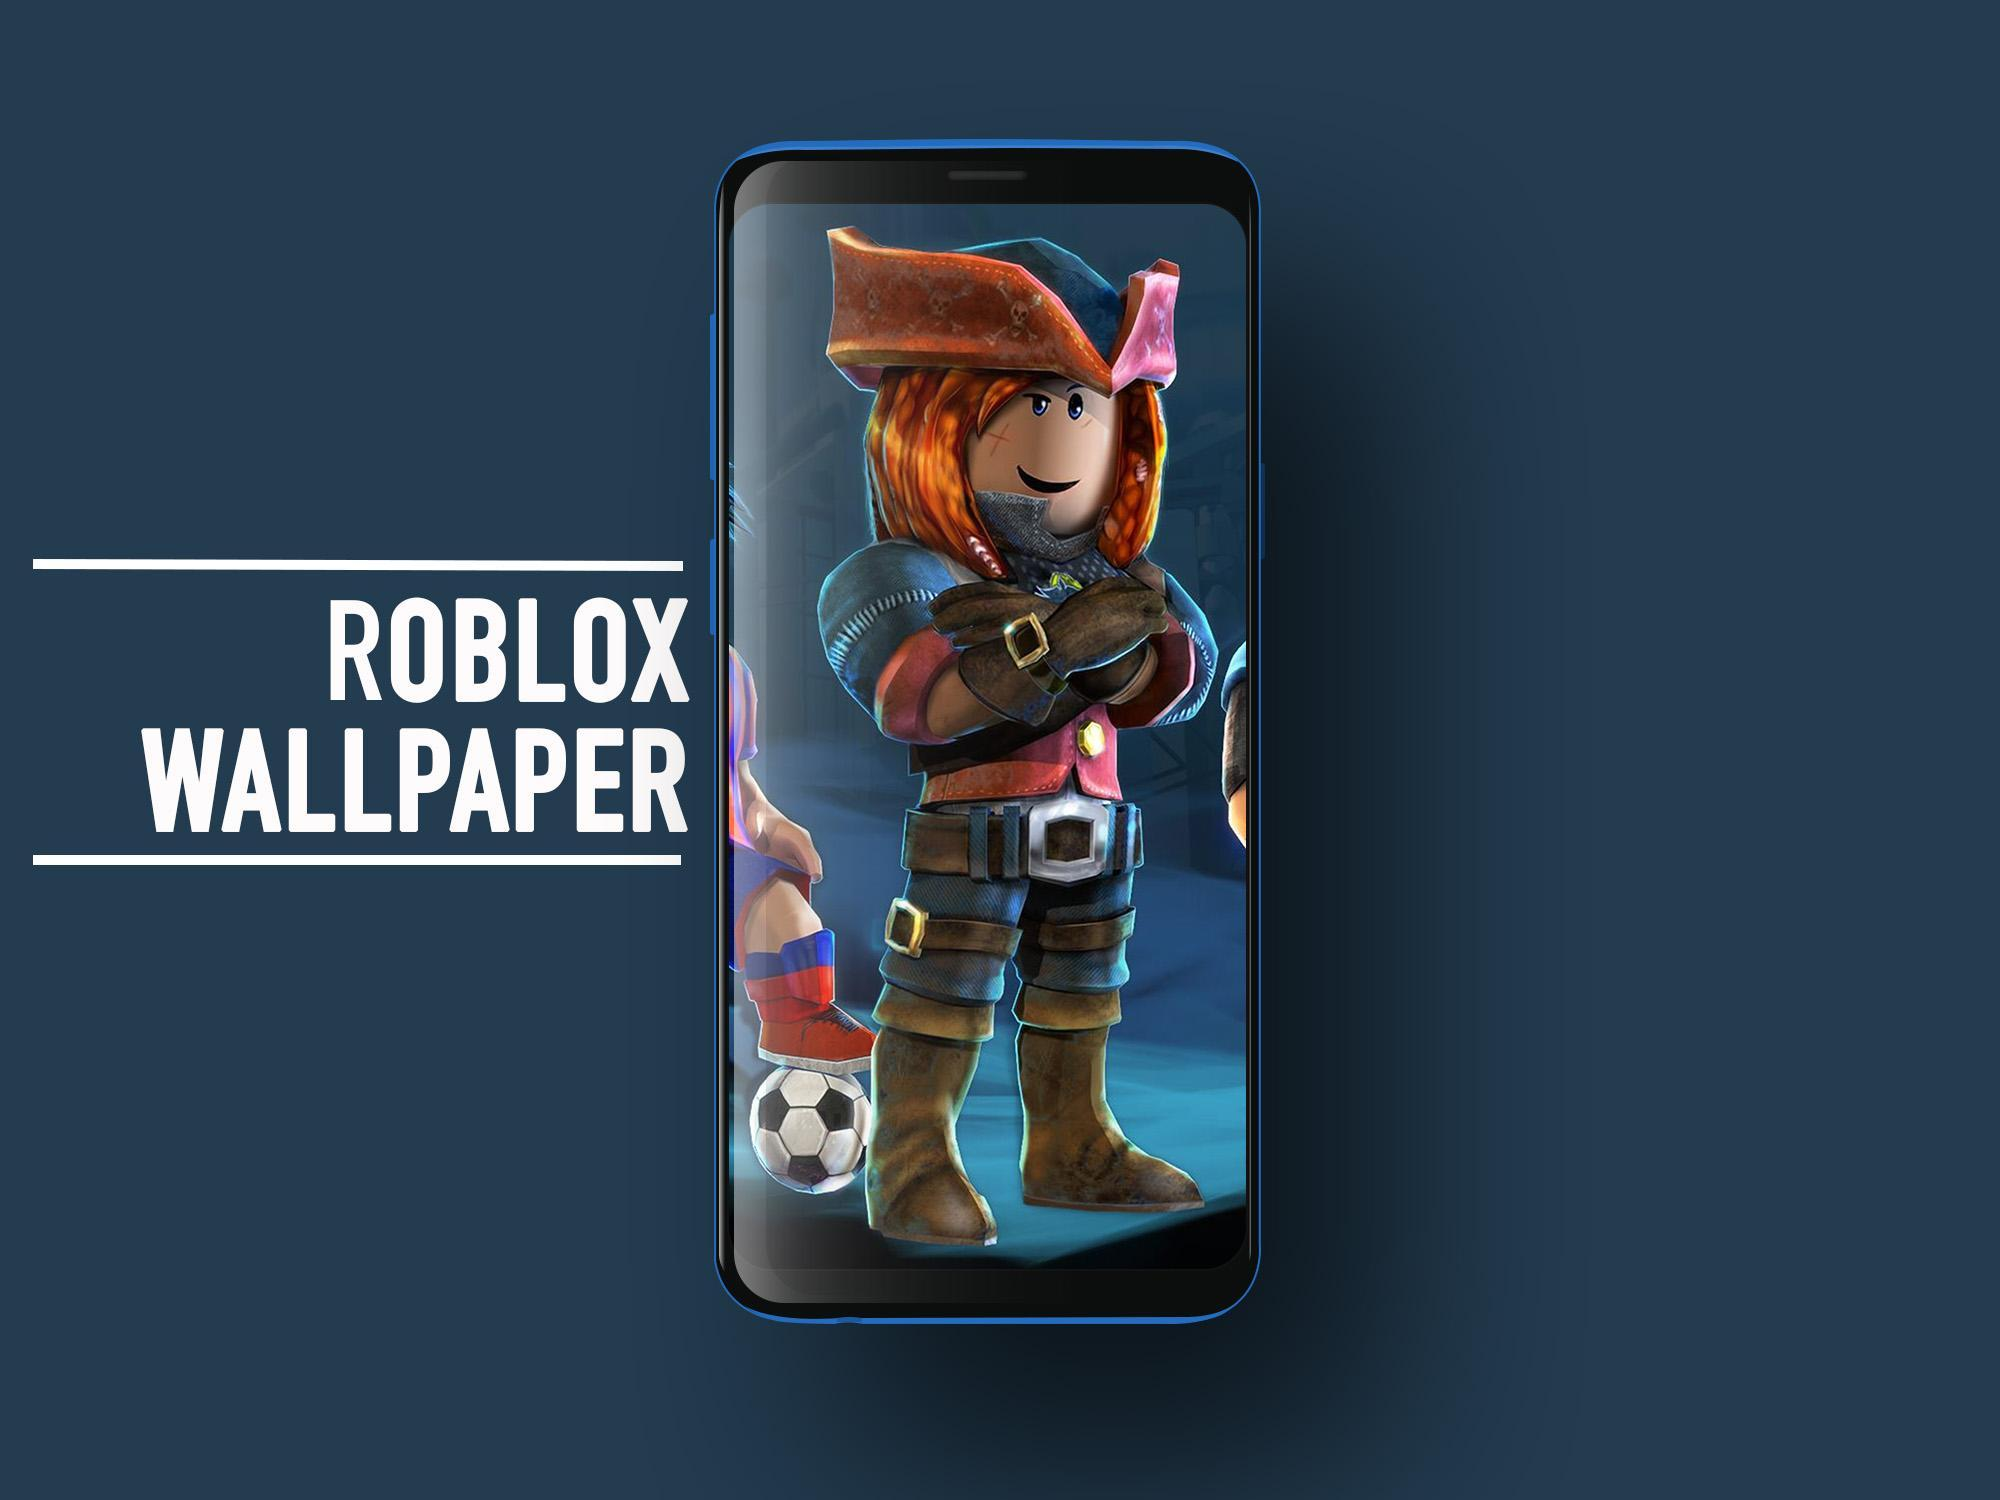 roblox same account launch game from different device